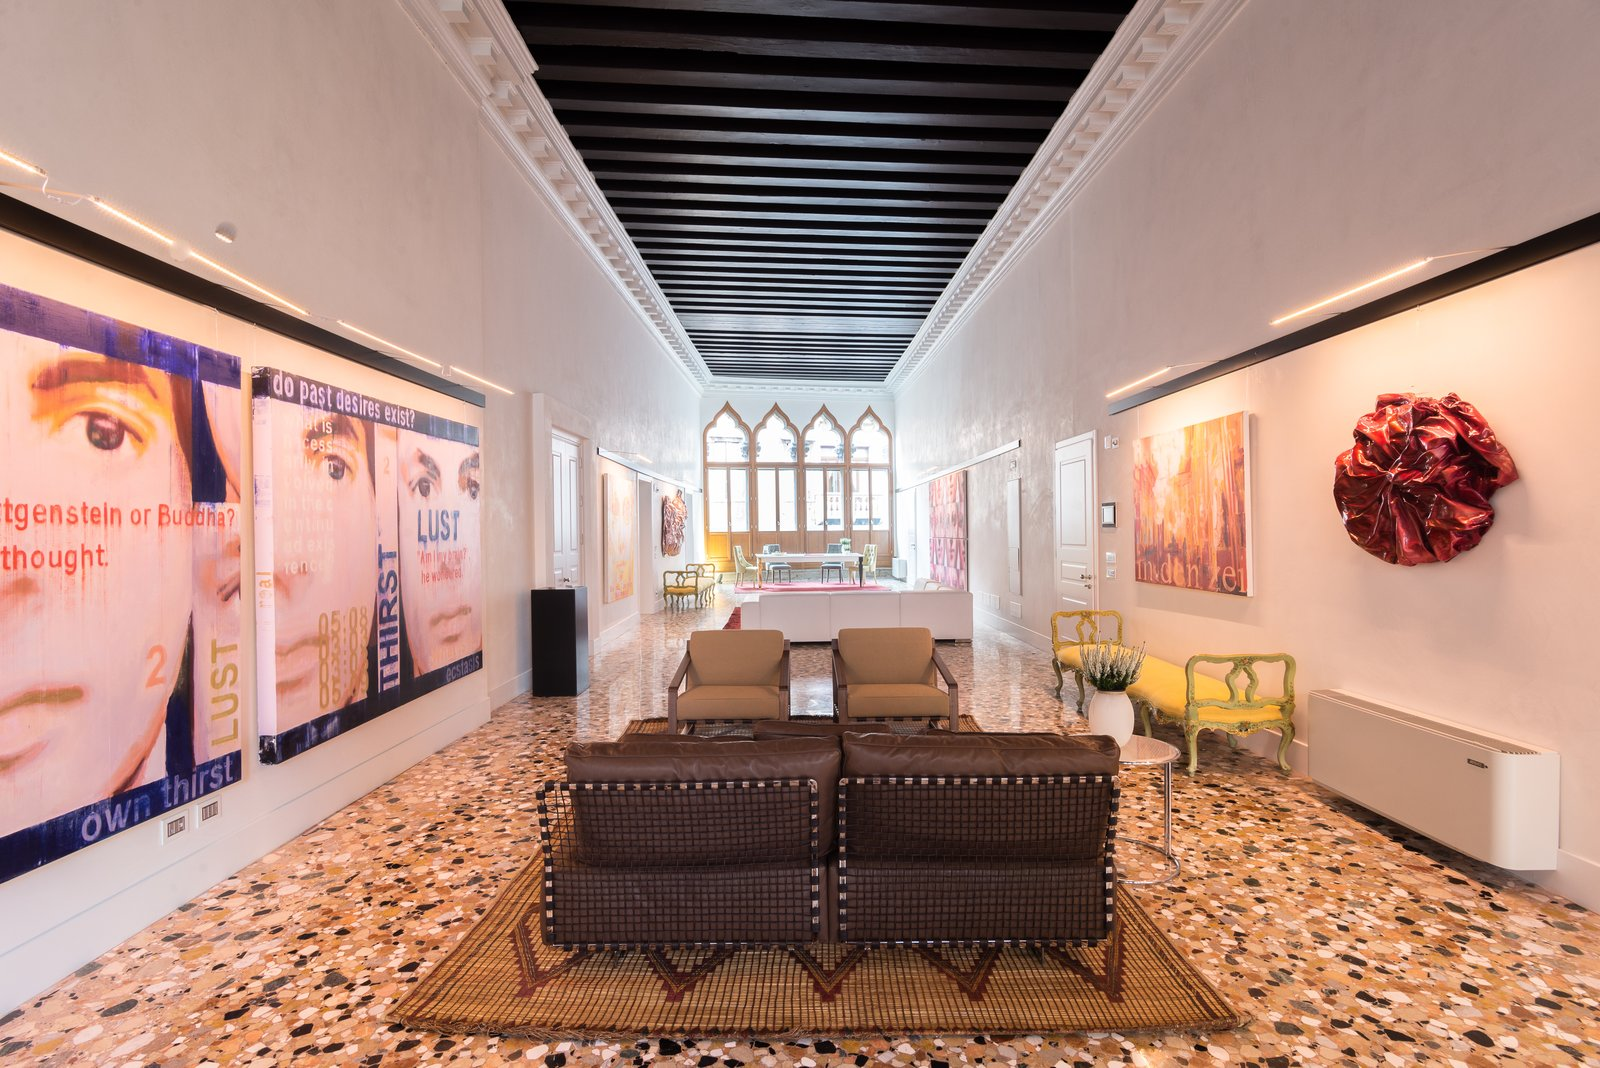 Living Room, Terrazzo Floor, Chair, Sofa, Bench, Table, and Accent Lighting The main living area of the home features Venetian terrazzo flooring and amble wall space.  Photo 3 of 5 in Act Like Italian Nobility in This Nearly $5 Million Apartment